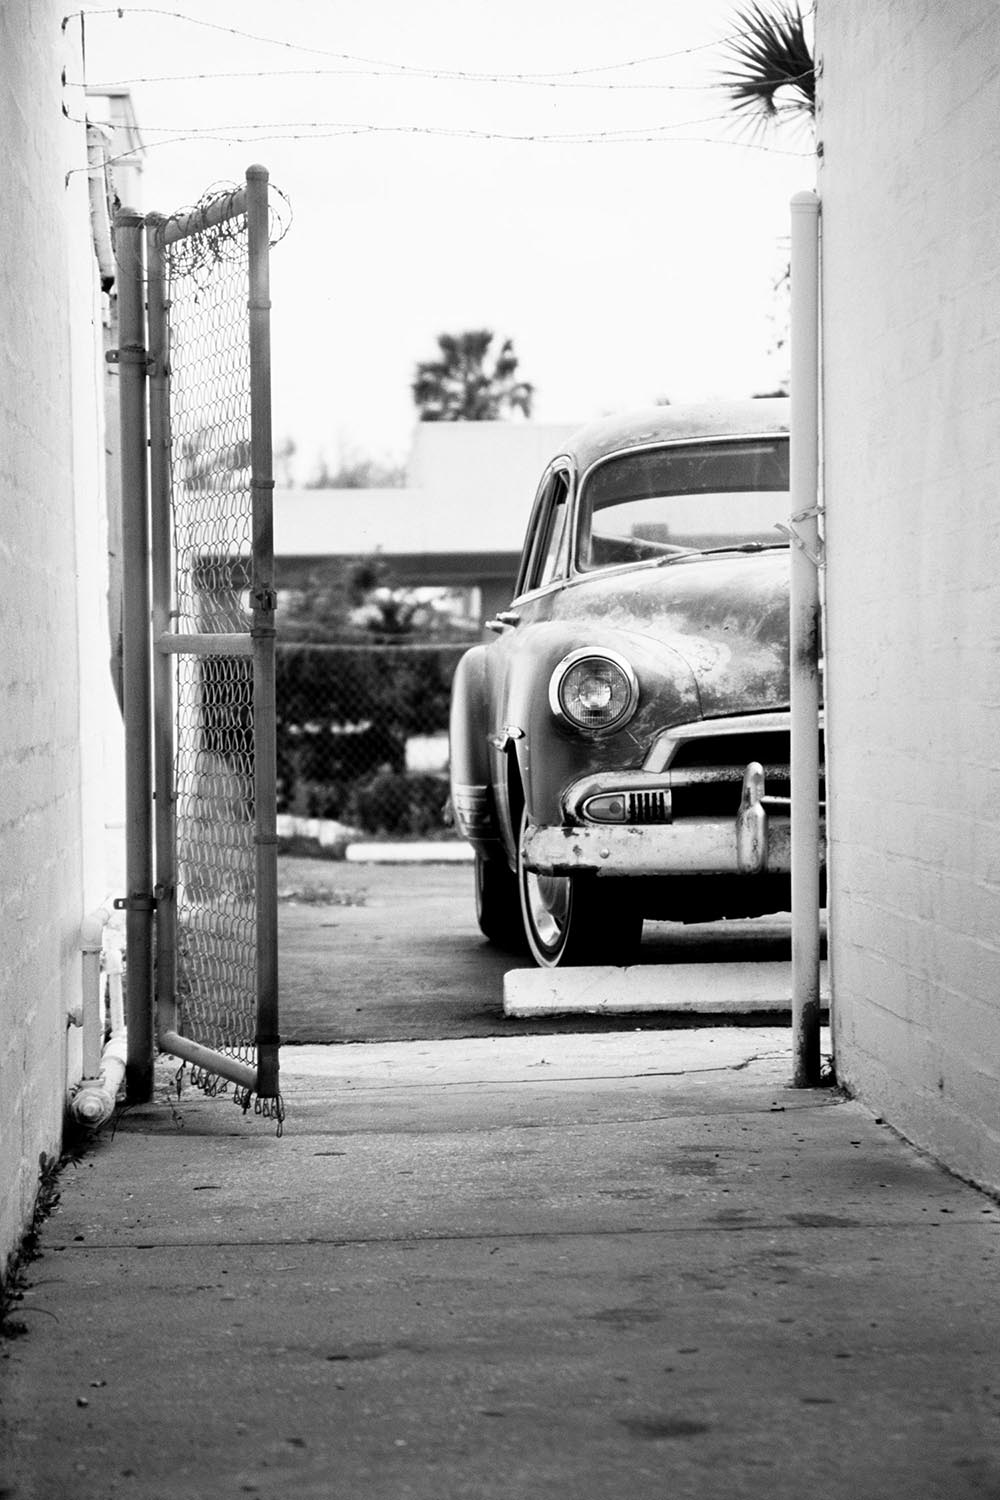 Black and white photograph of an antique car half-seen down an alley way.